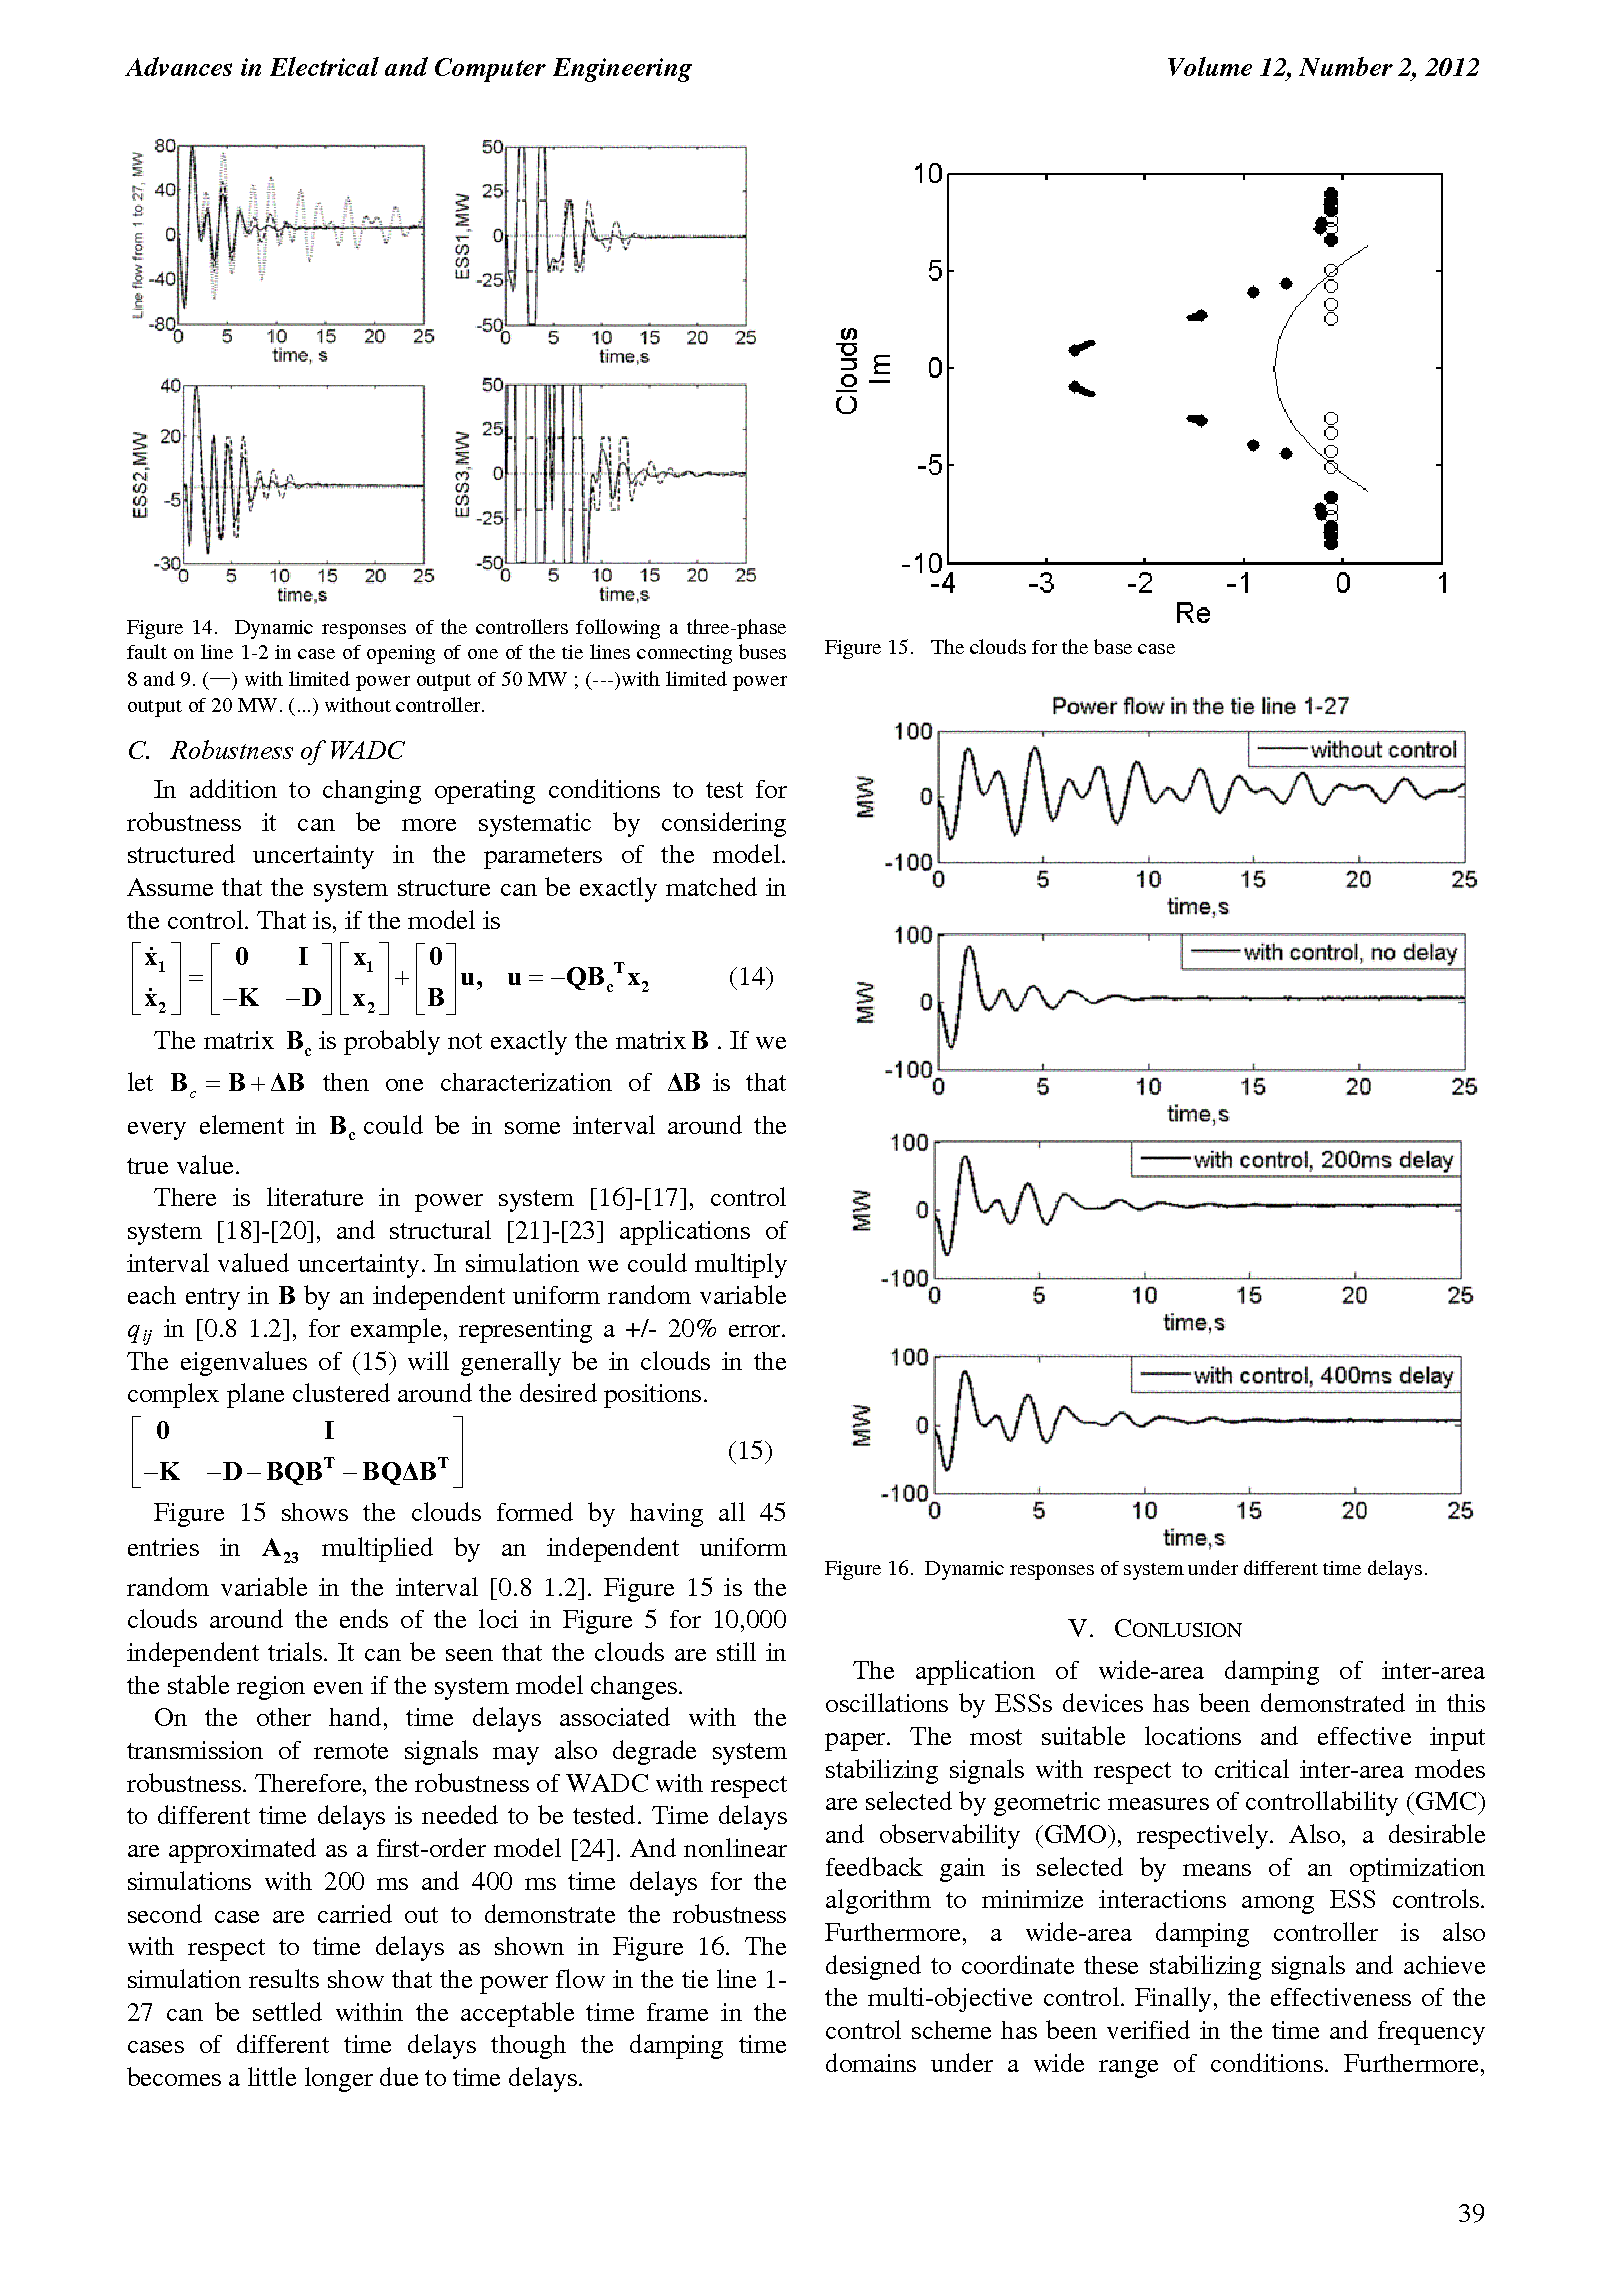 PDF Quickview for paper with DOI:10.4316/AECE.2012.02006